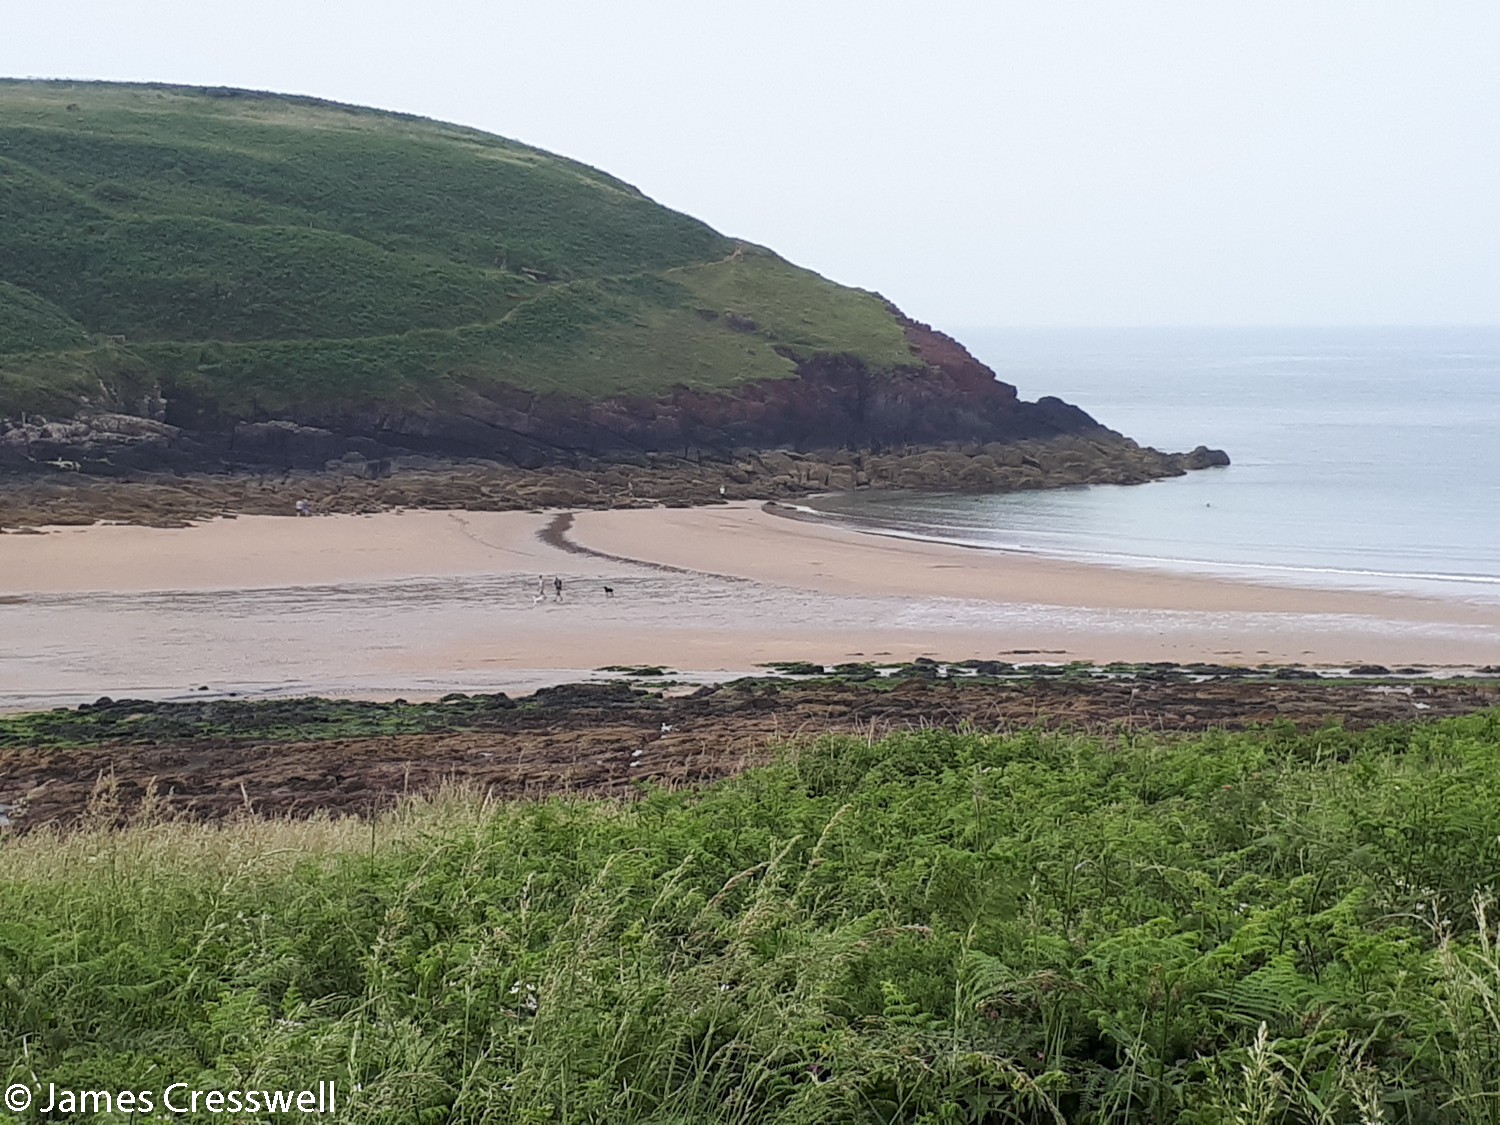 Beach at Manorbier